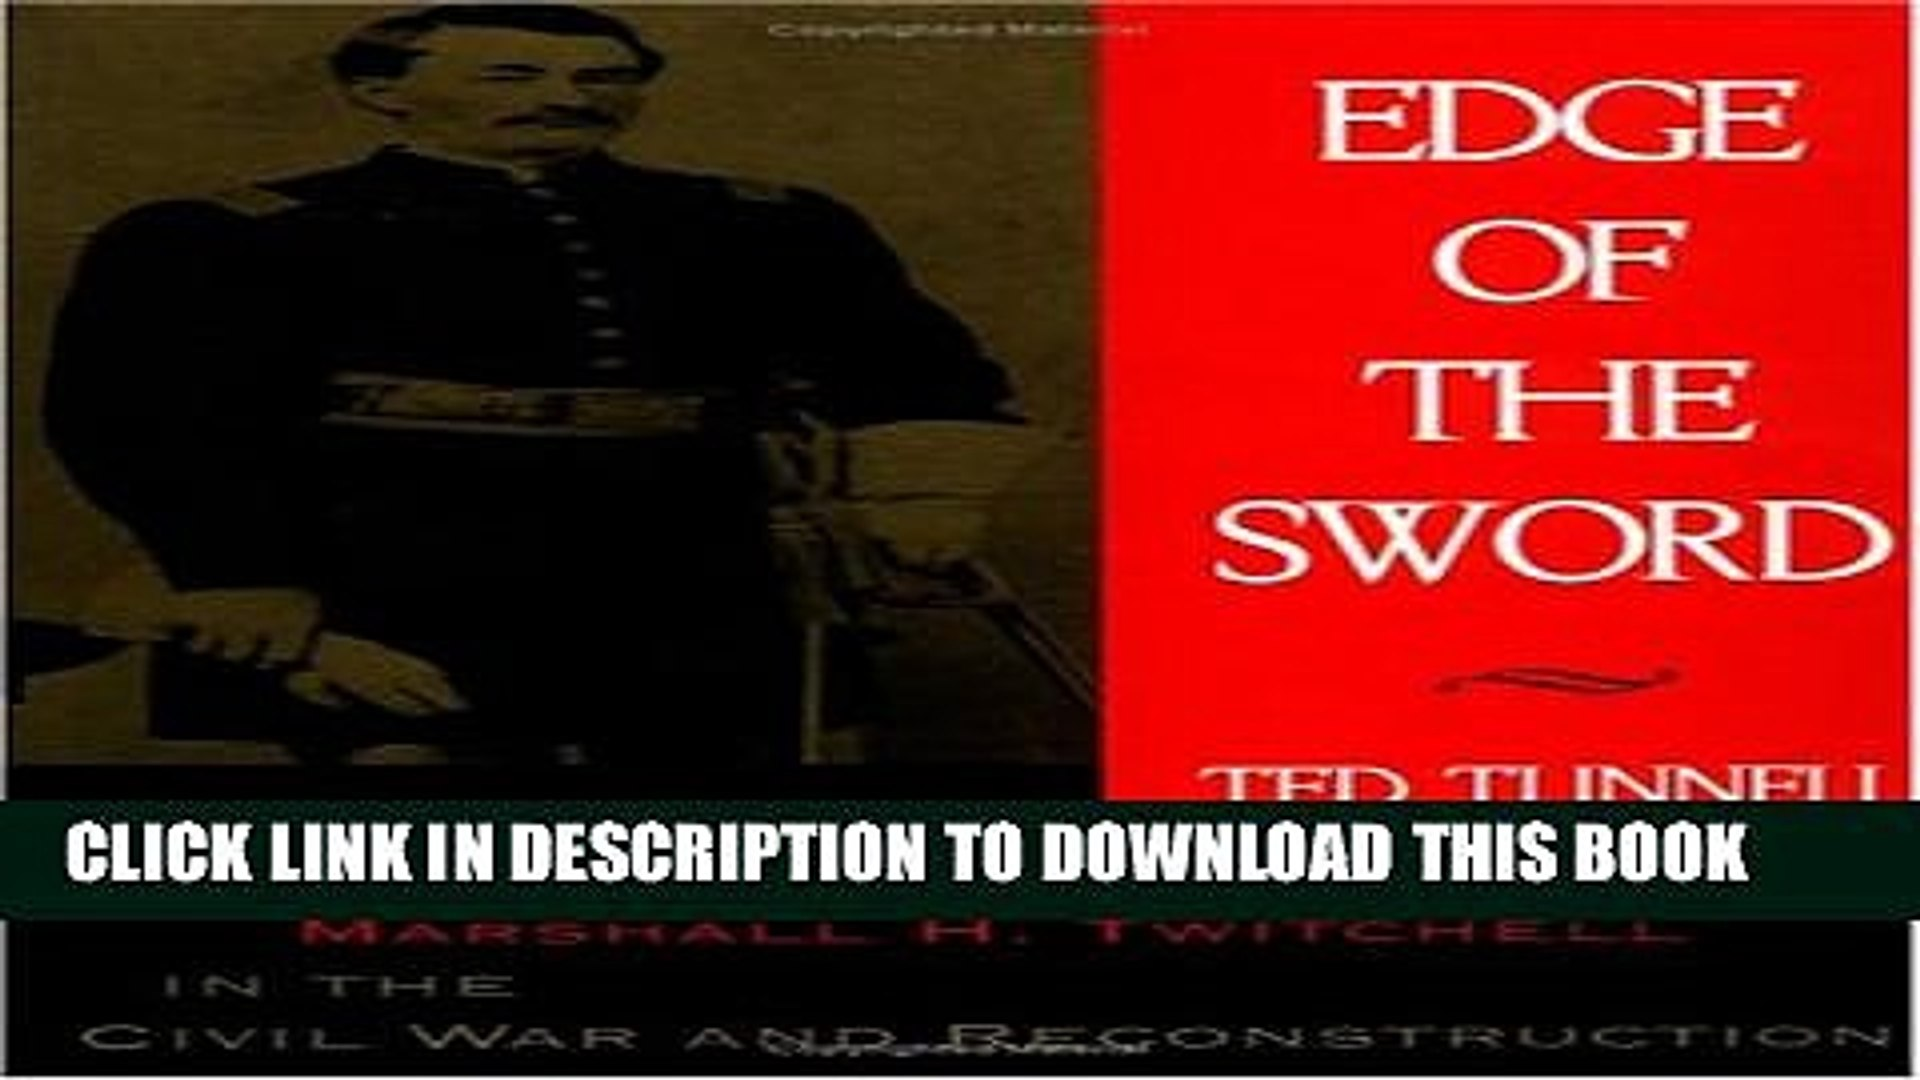 [PDF] Edge of the Sword: The Ordeal of Carpetbagger Marshall H. Twitchell in the Civil War and